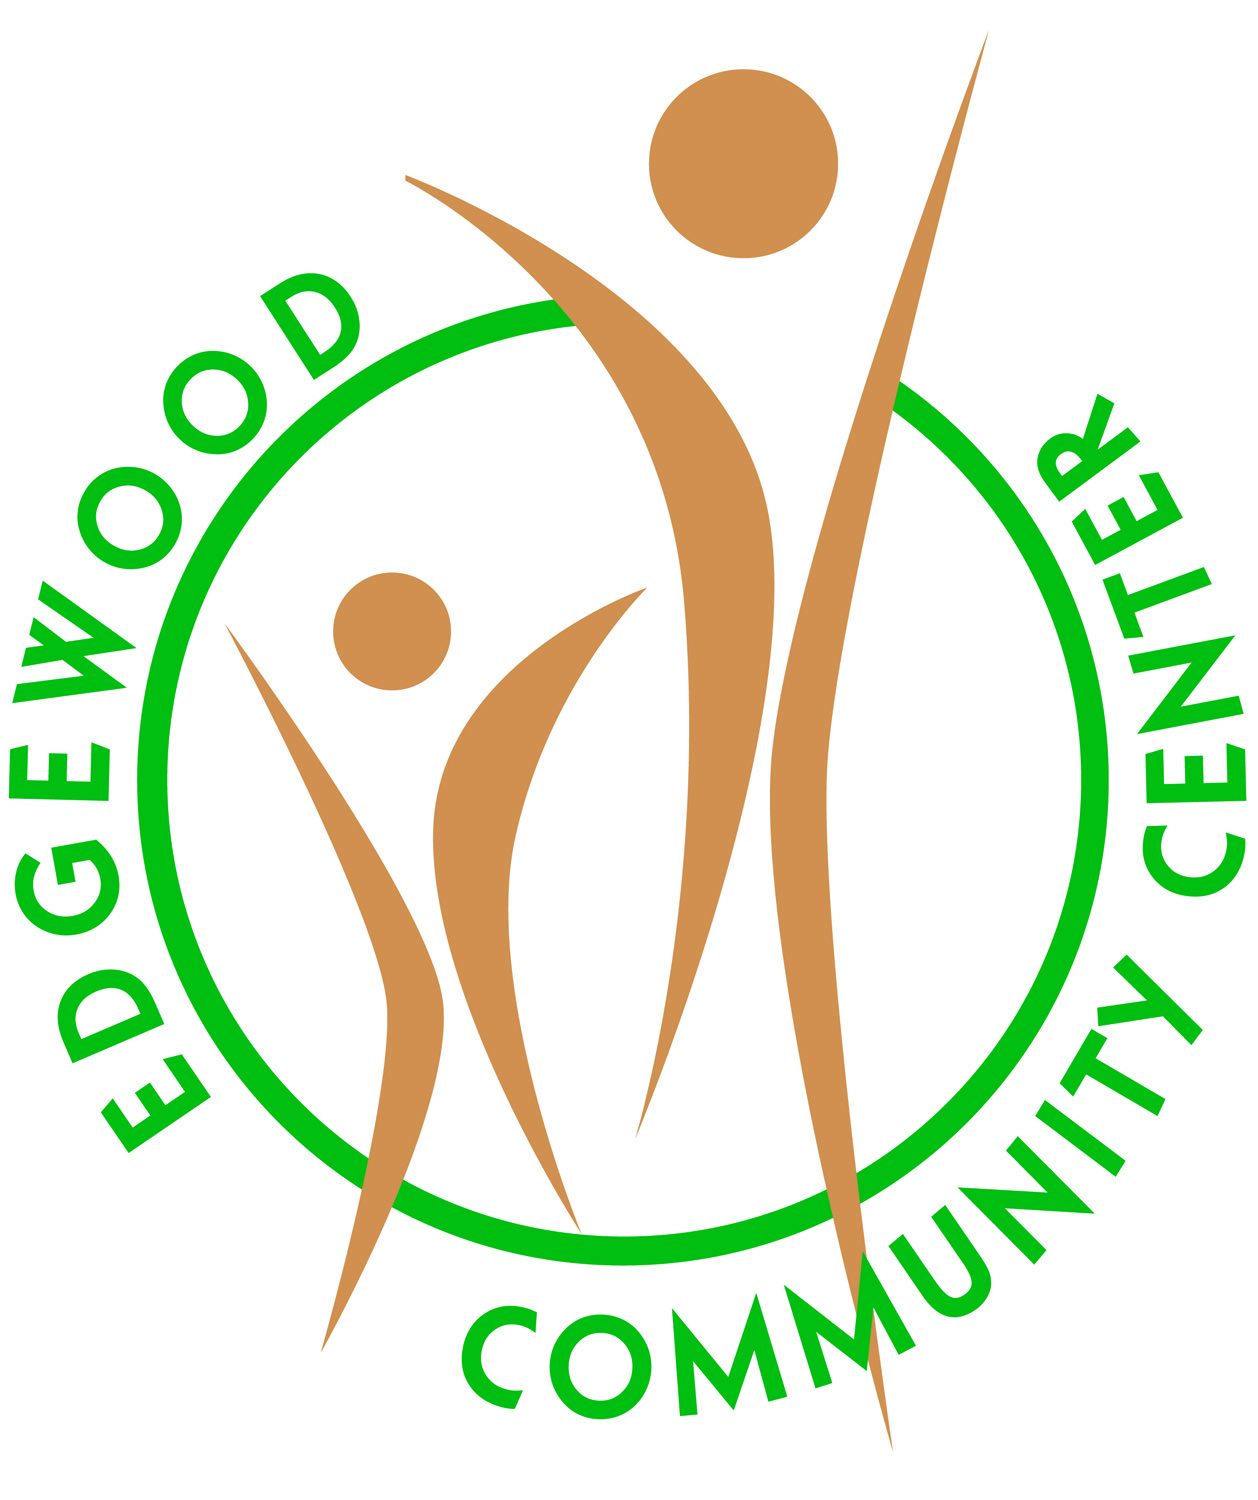 Edgewood Community Center